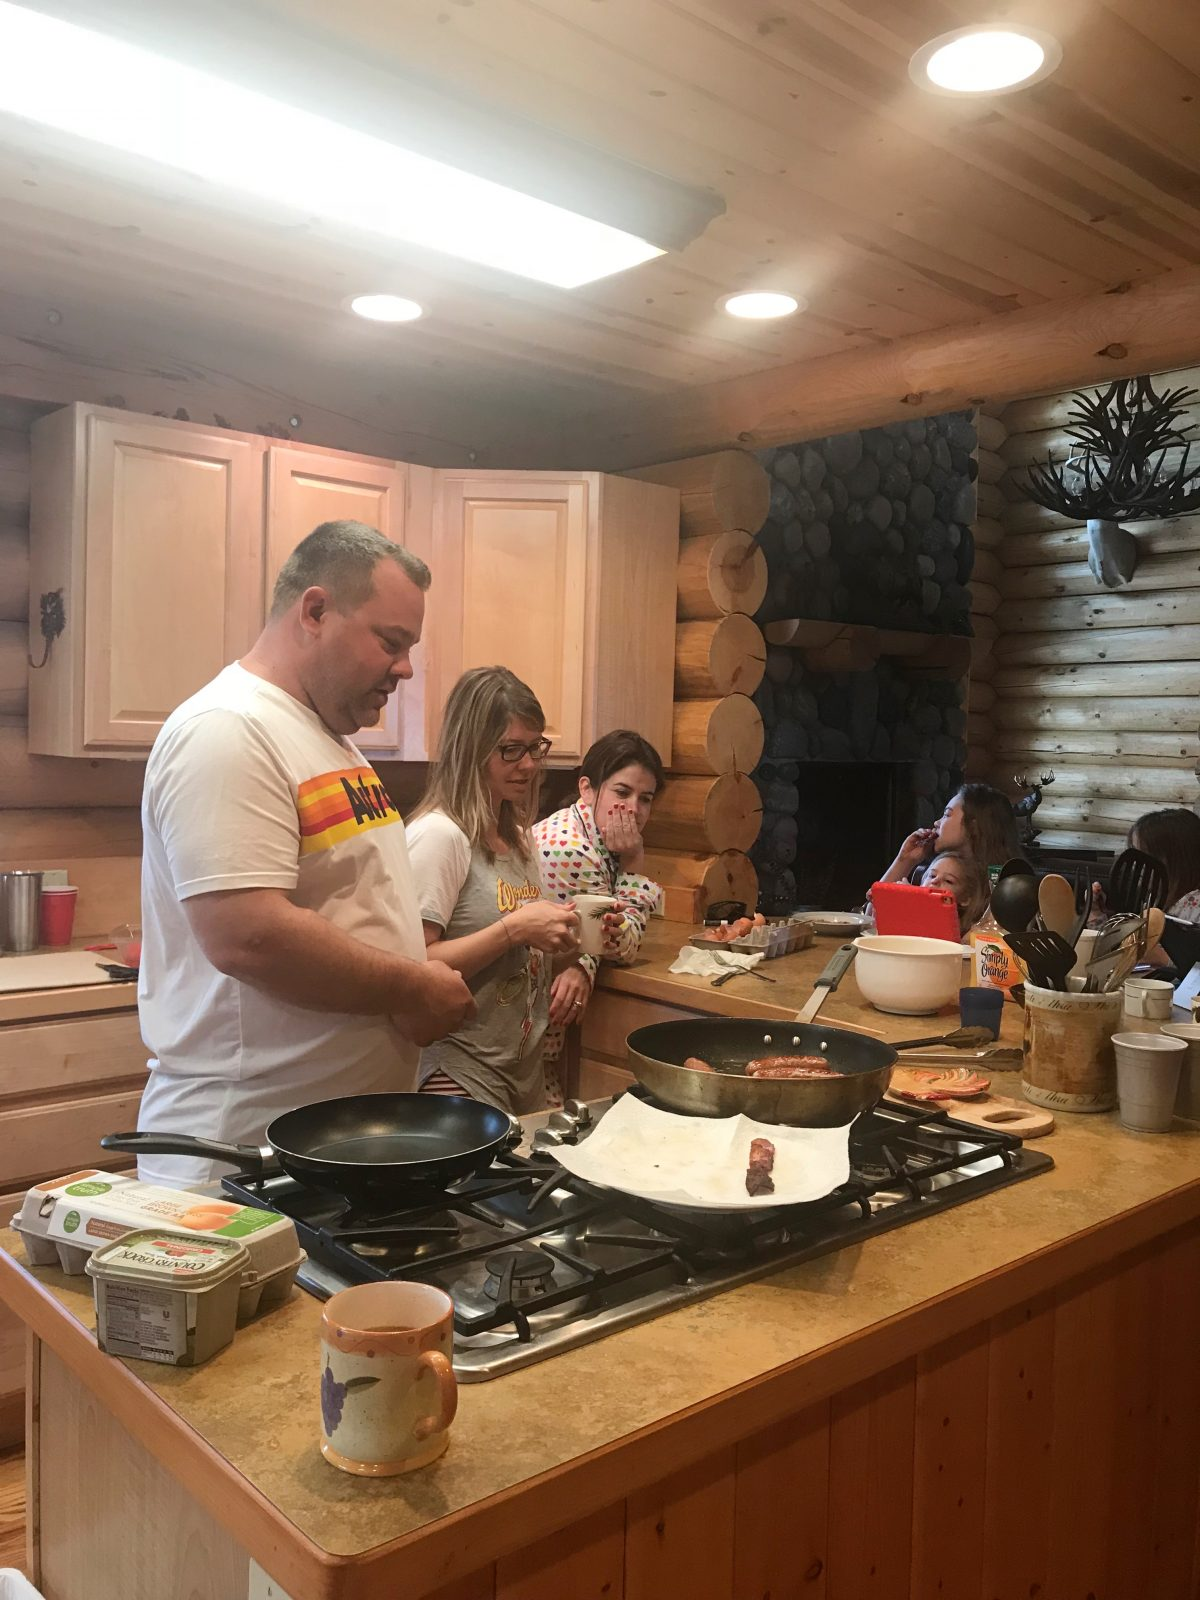 Family ski trip with toddler - cabin in Pagosa Springs, Colorado (7)